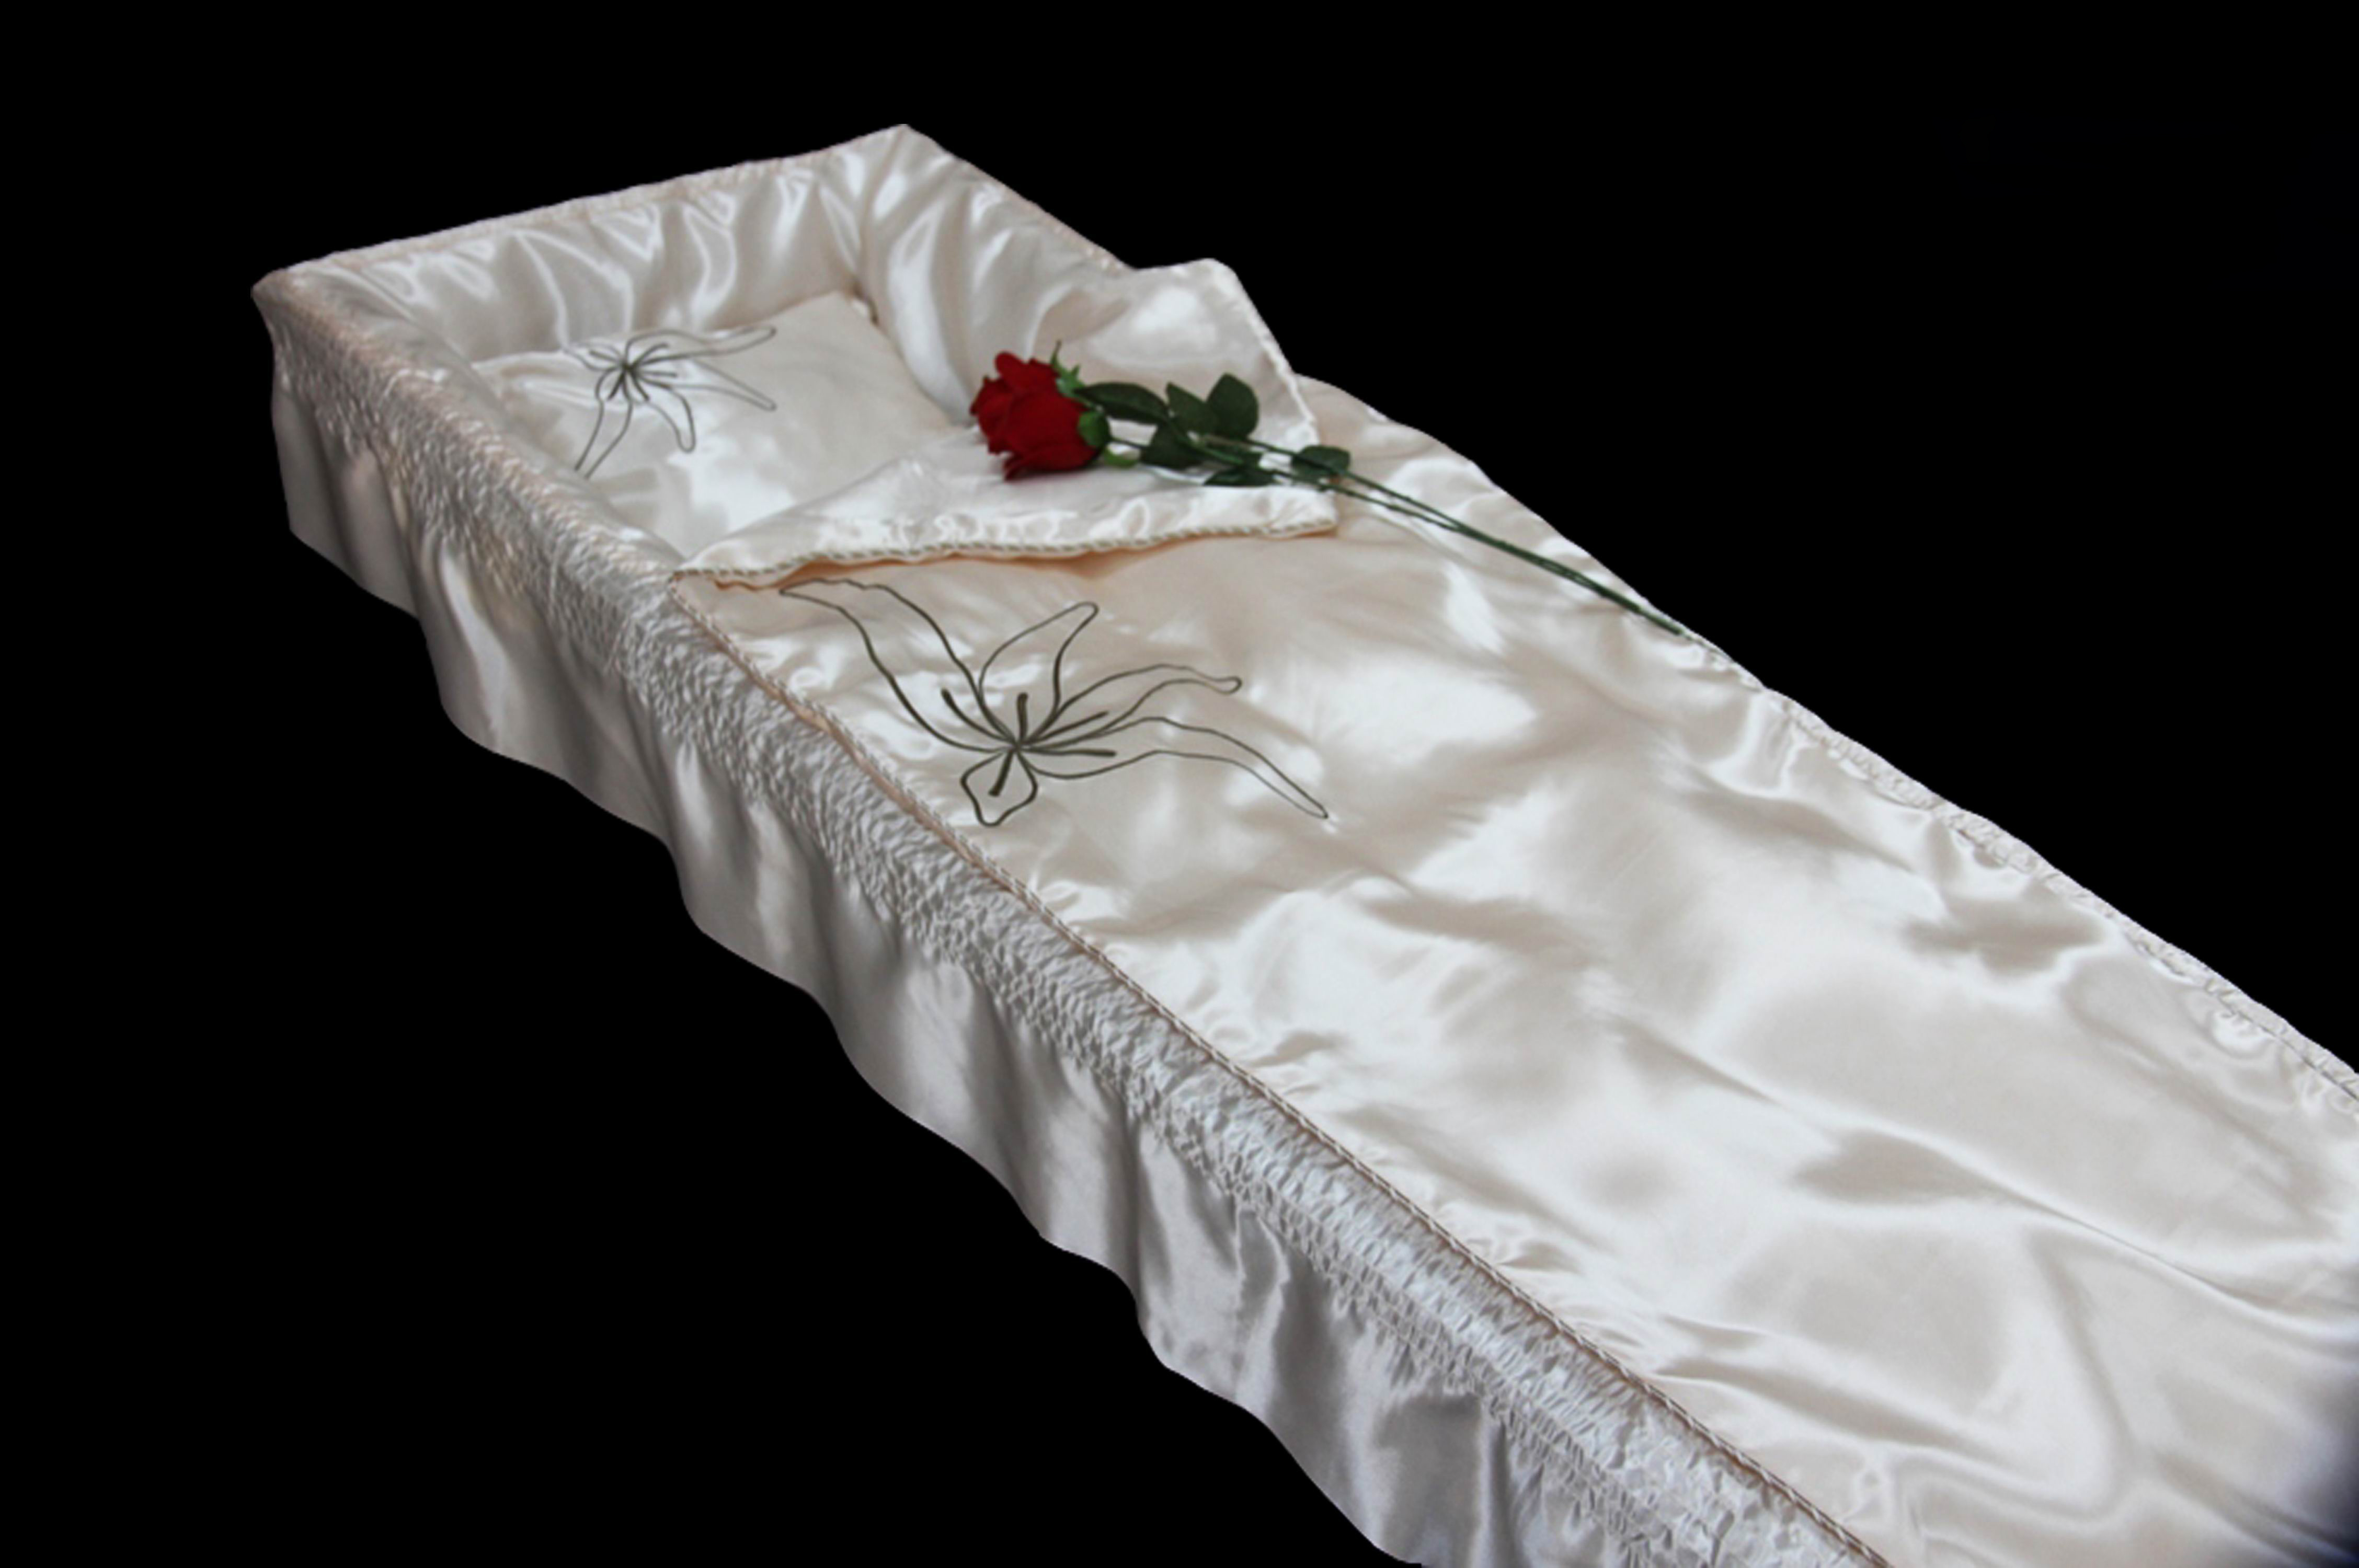 Europe Style Coffin Lining Coffin Interiors Casket cover Casket Fabric